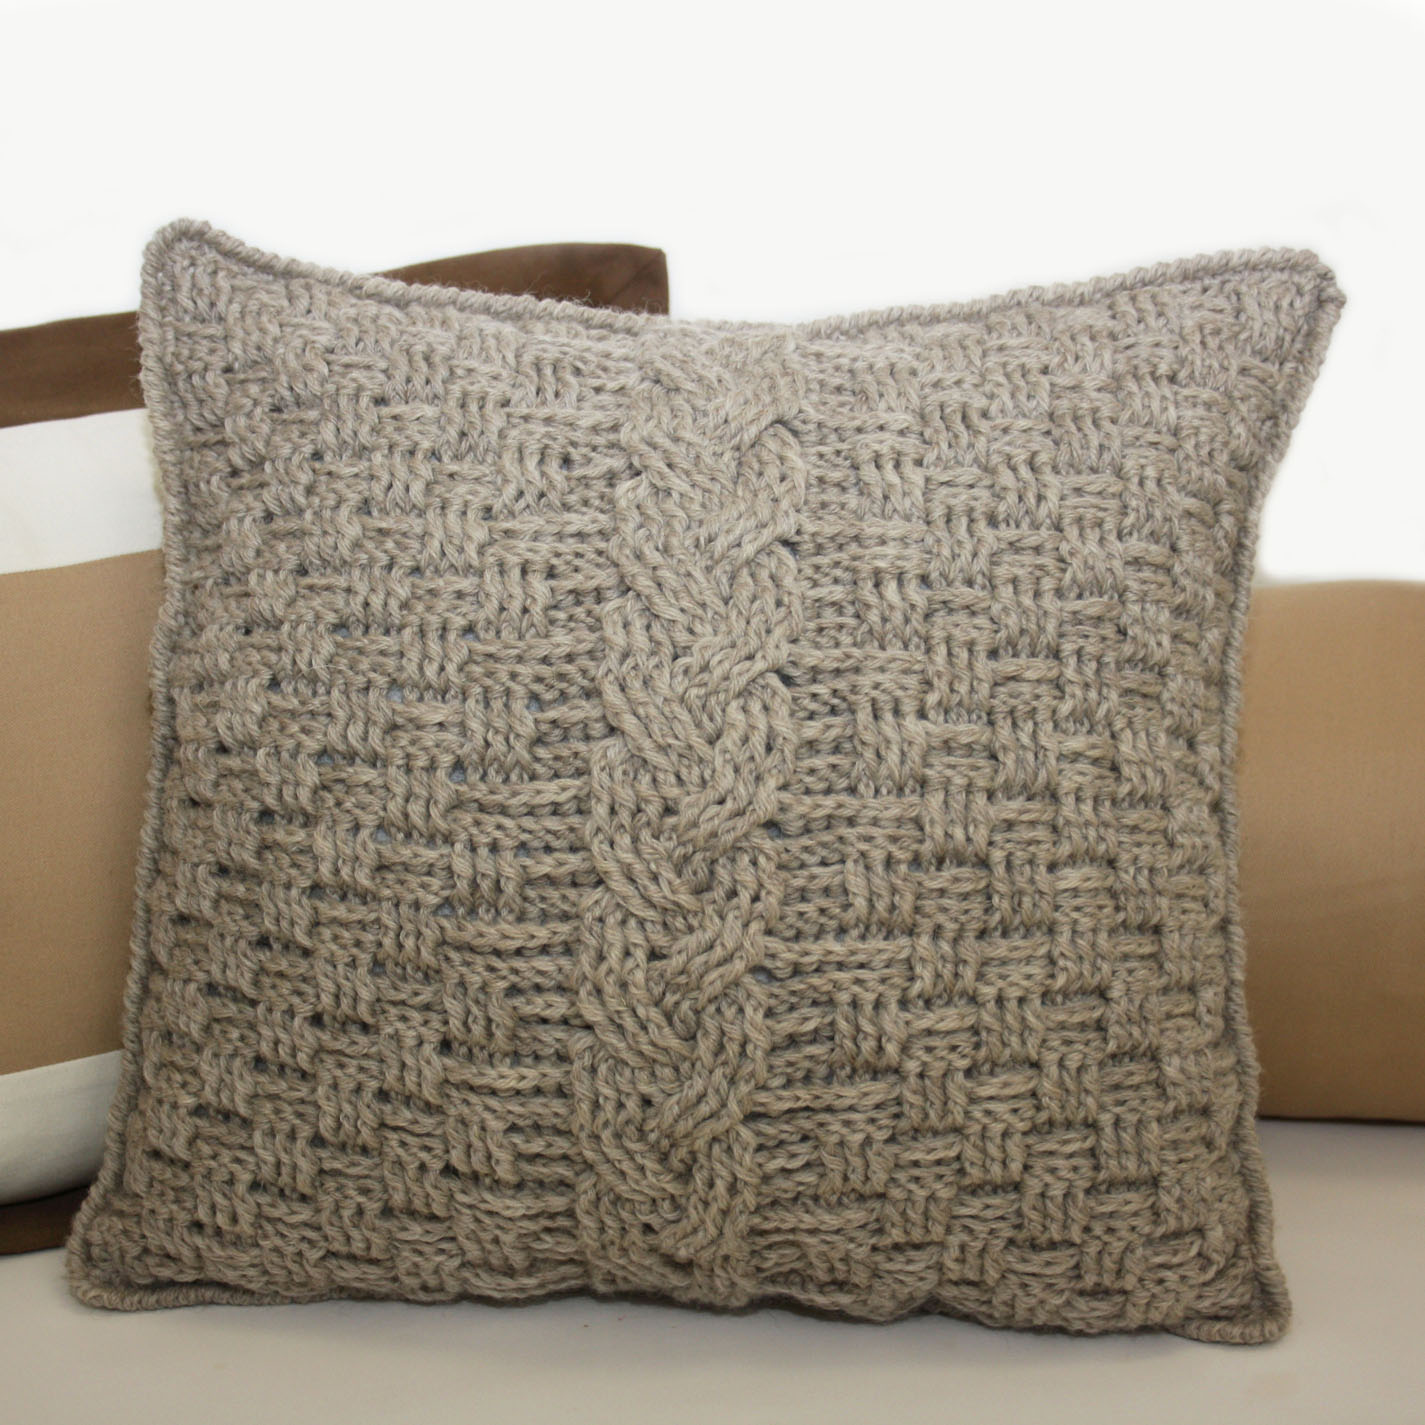 Crochet Pillow : ... ?sew?cute design shop: new crochet pattern - aran accent pillow